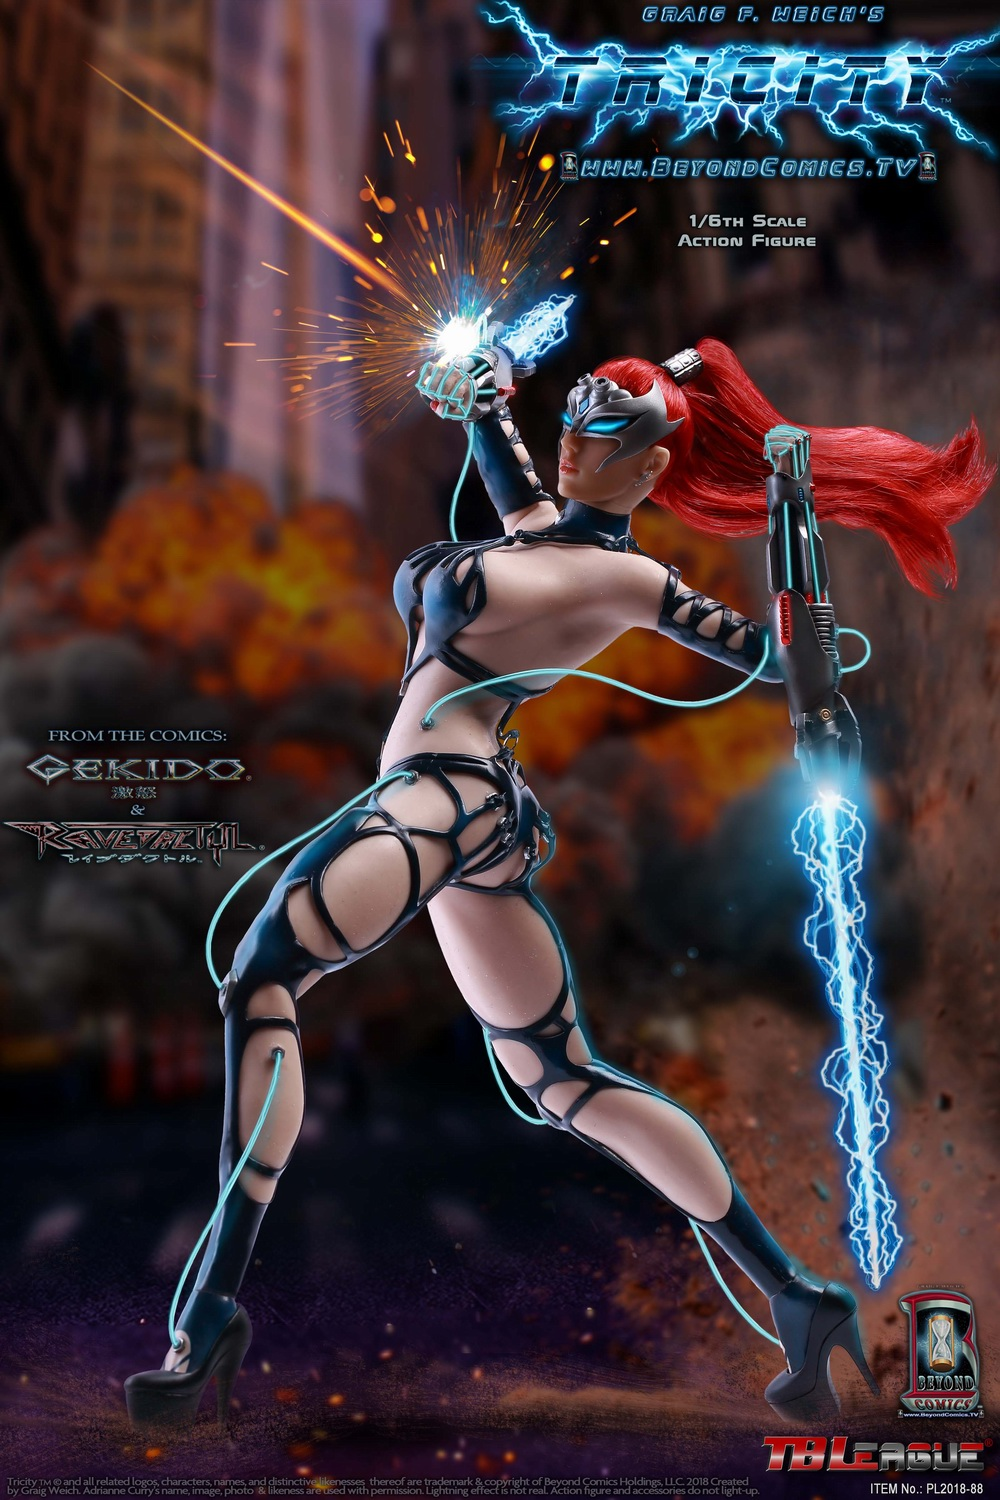 NEW PRODUCT: TBLeague new product: 1/6 lightning goddess - Cui Si / TRICITY-Goddess of Lightning (PL2018-88#) 15380410